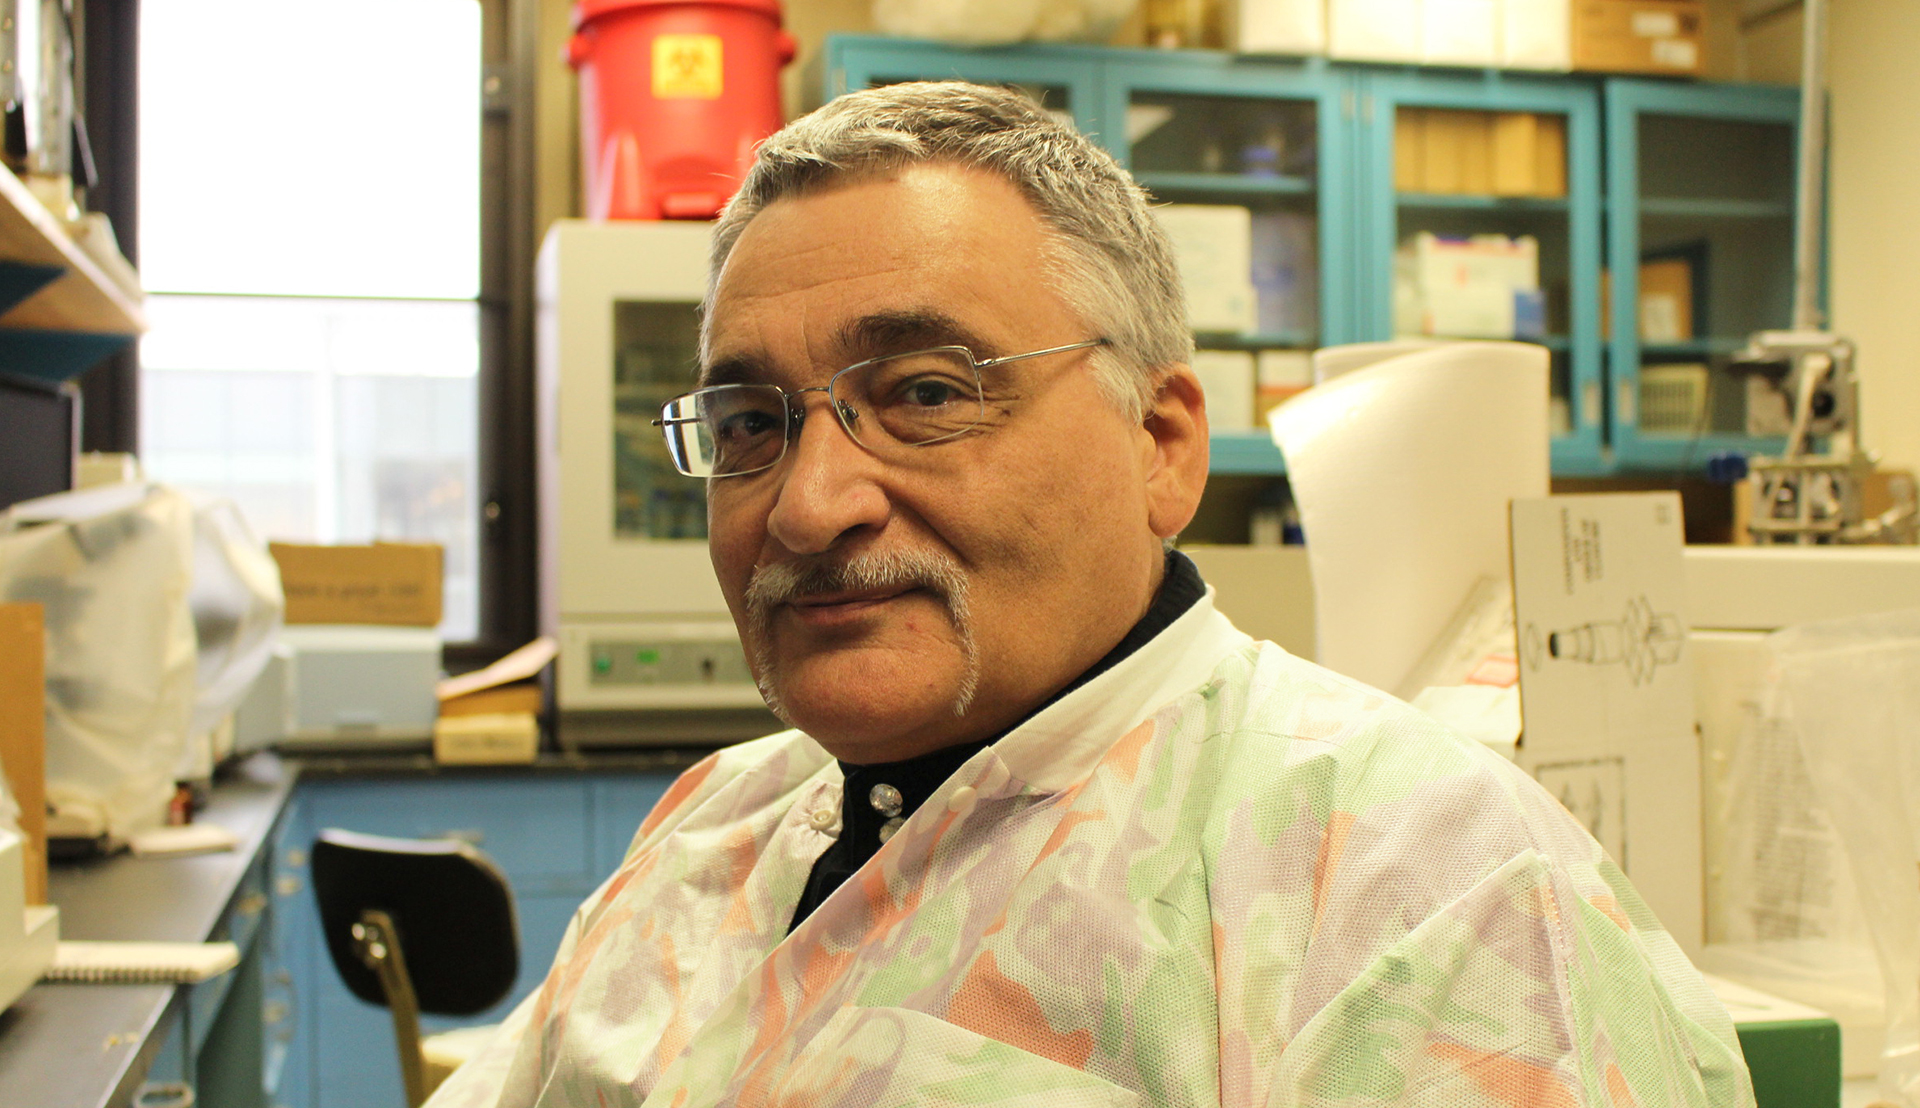 Rutgers Global - Probiotics Research Spans the Globe, Michael Chikindas poses for a seated photo in SEBS laboratory wearing lab coat